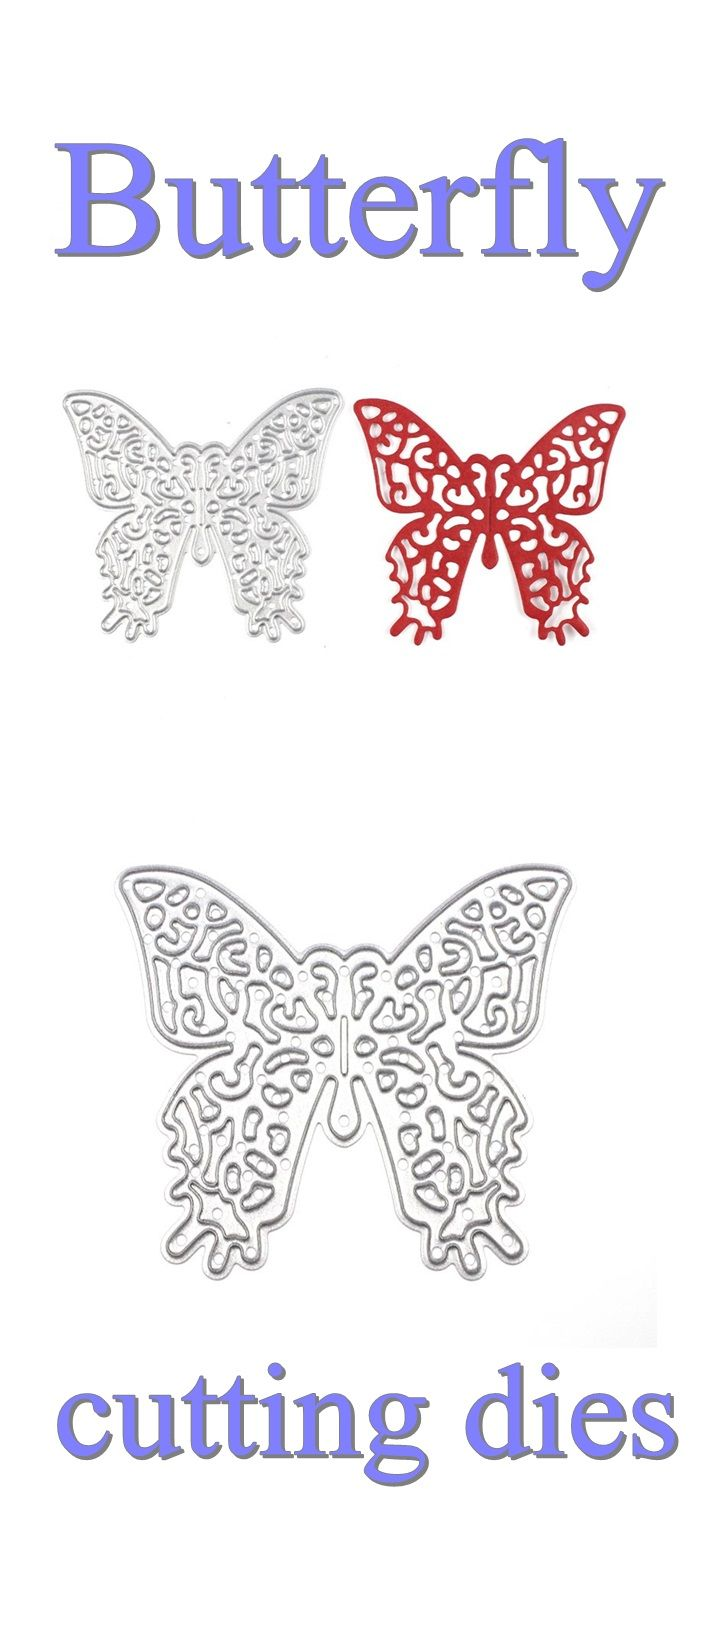 Butterfly Lace Cutting Dies Cheap Die Cutters Scrapbooking